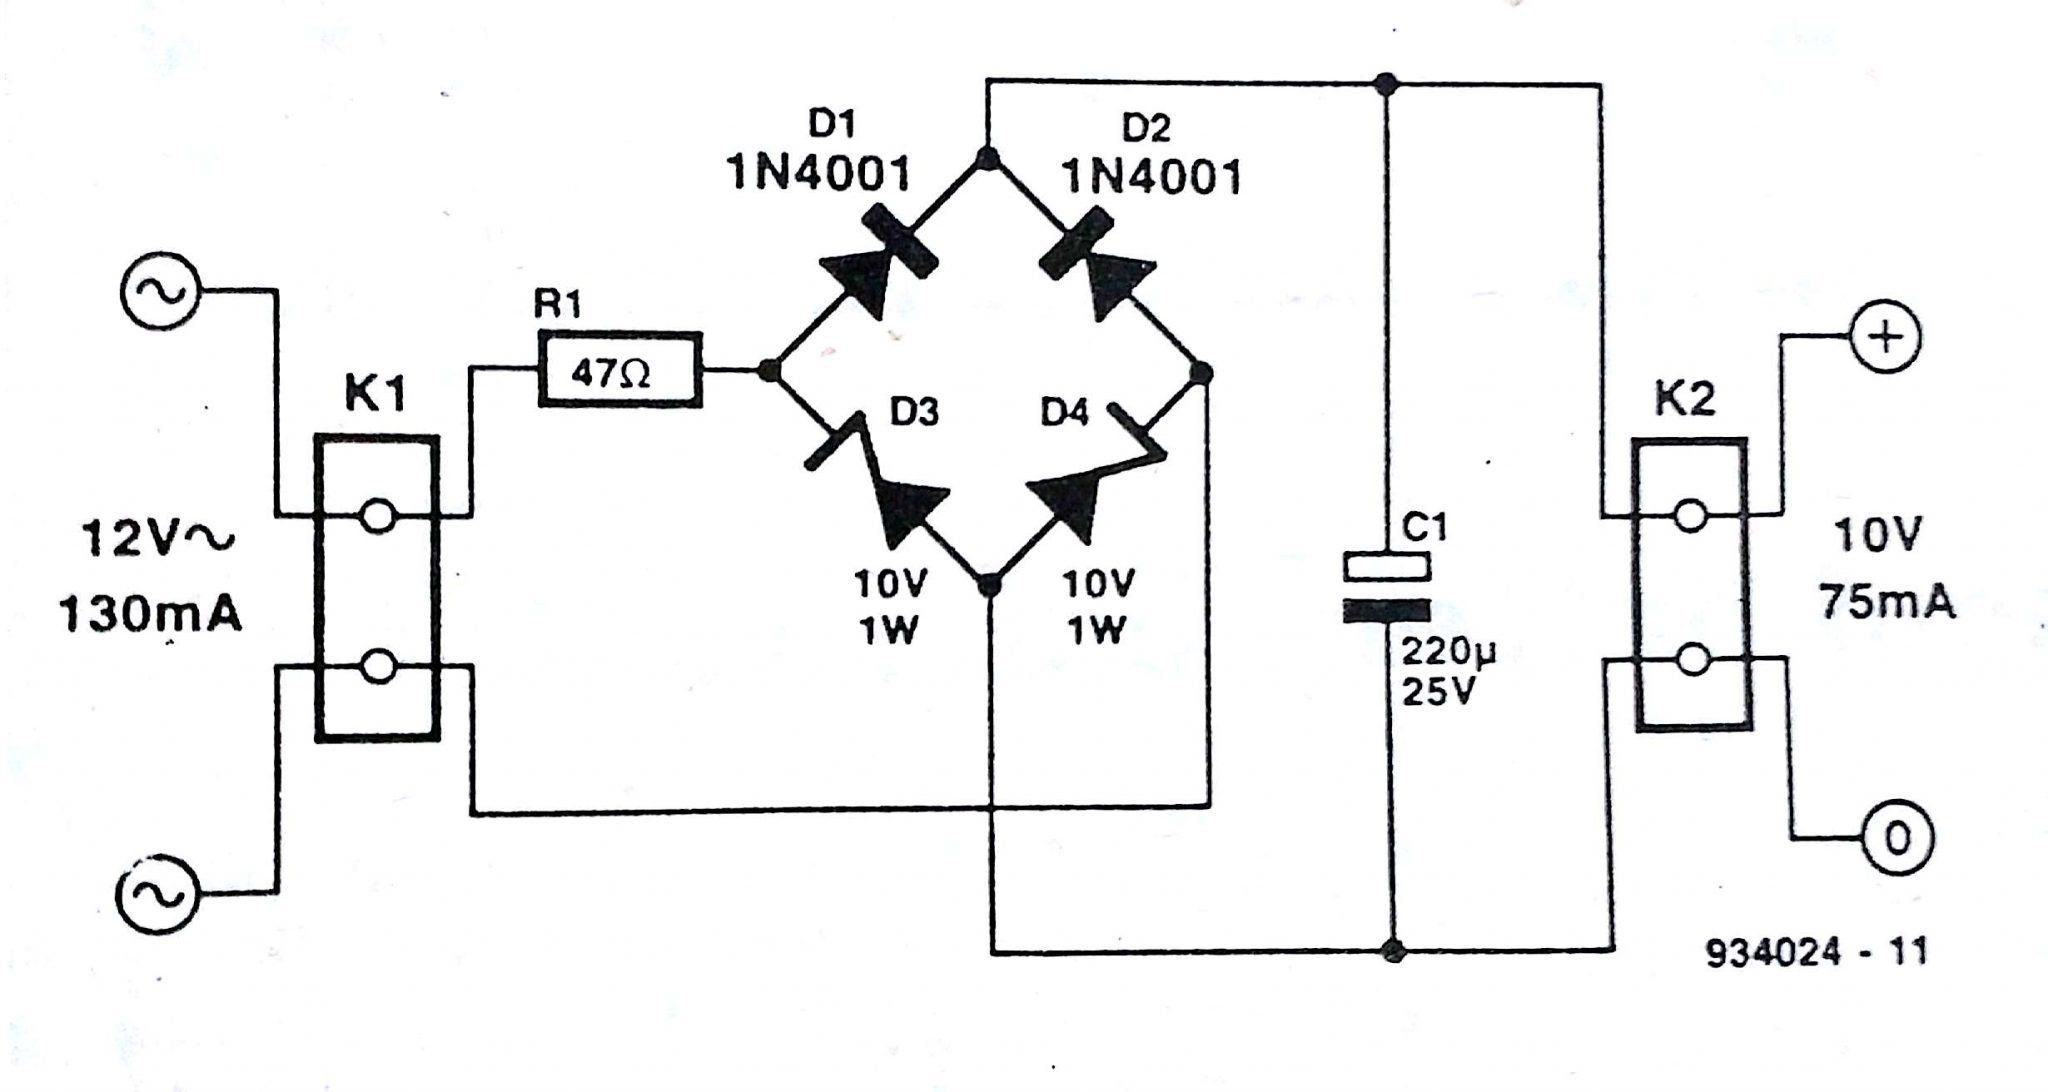 hight resolution of wiring diagram for a rectifier wiring diagram toolbox wiring diagram regulator rectifier circuit diagram rectifier wiring